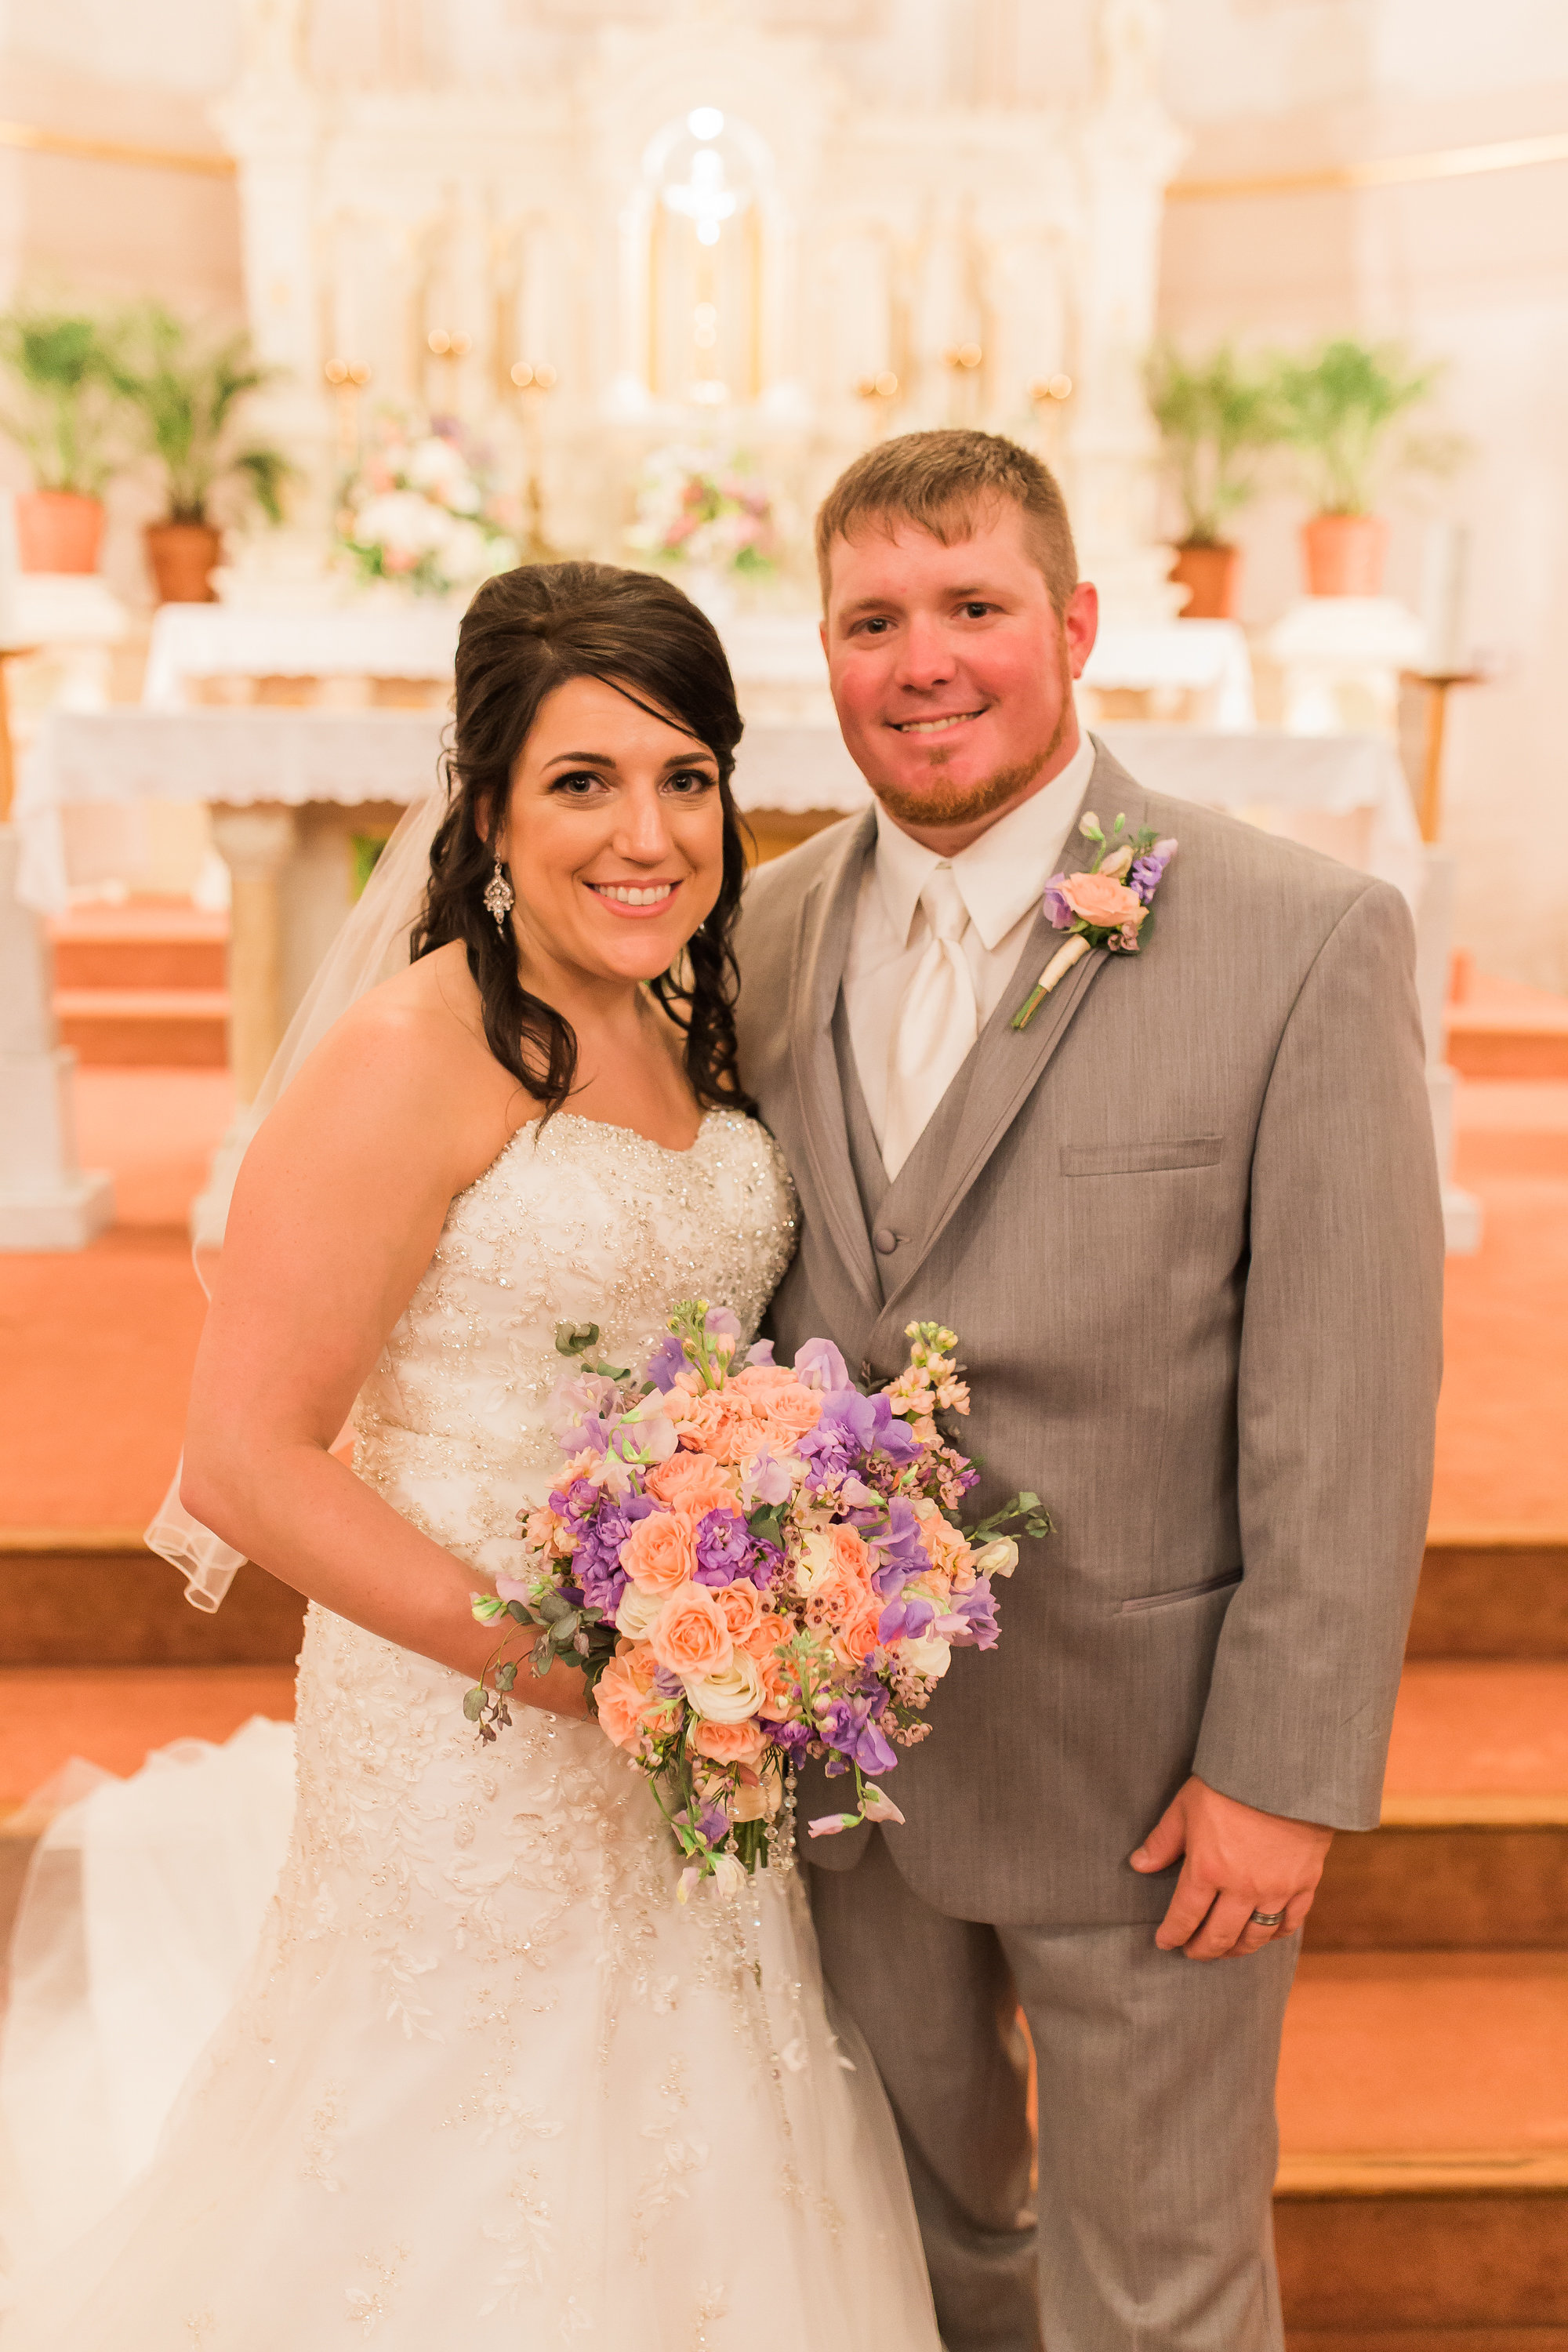 The bride and groom!    Photo by Kaylie Nicole Photography